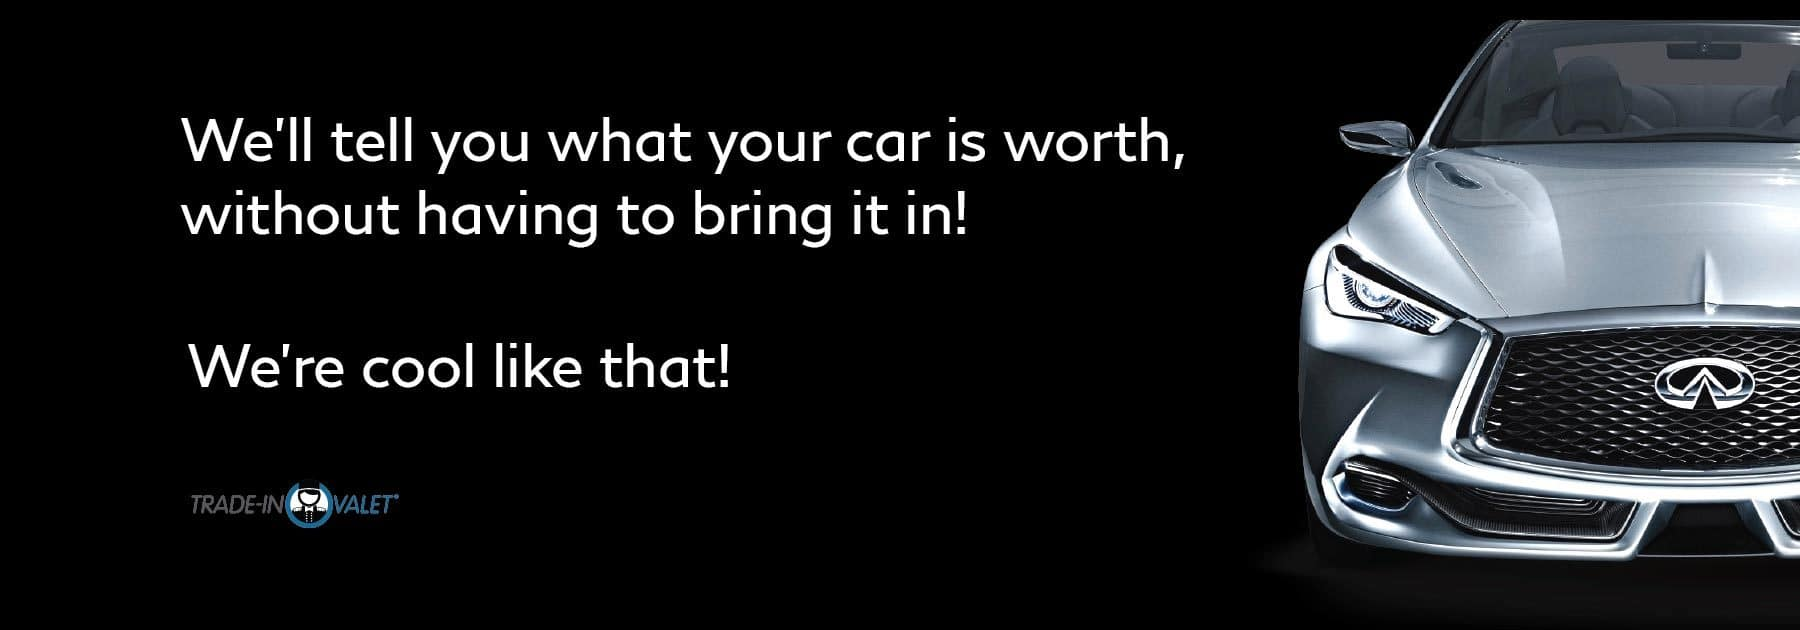 value your trade-in vehicle